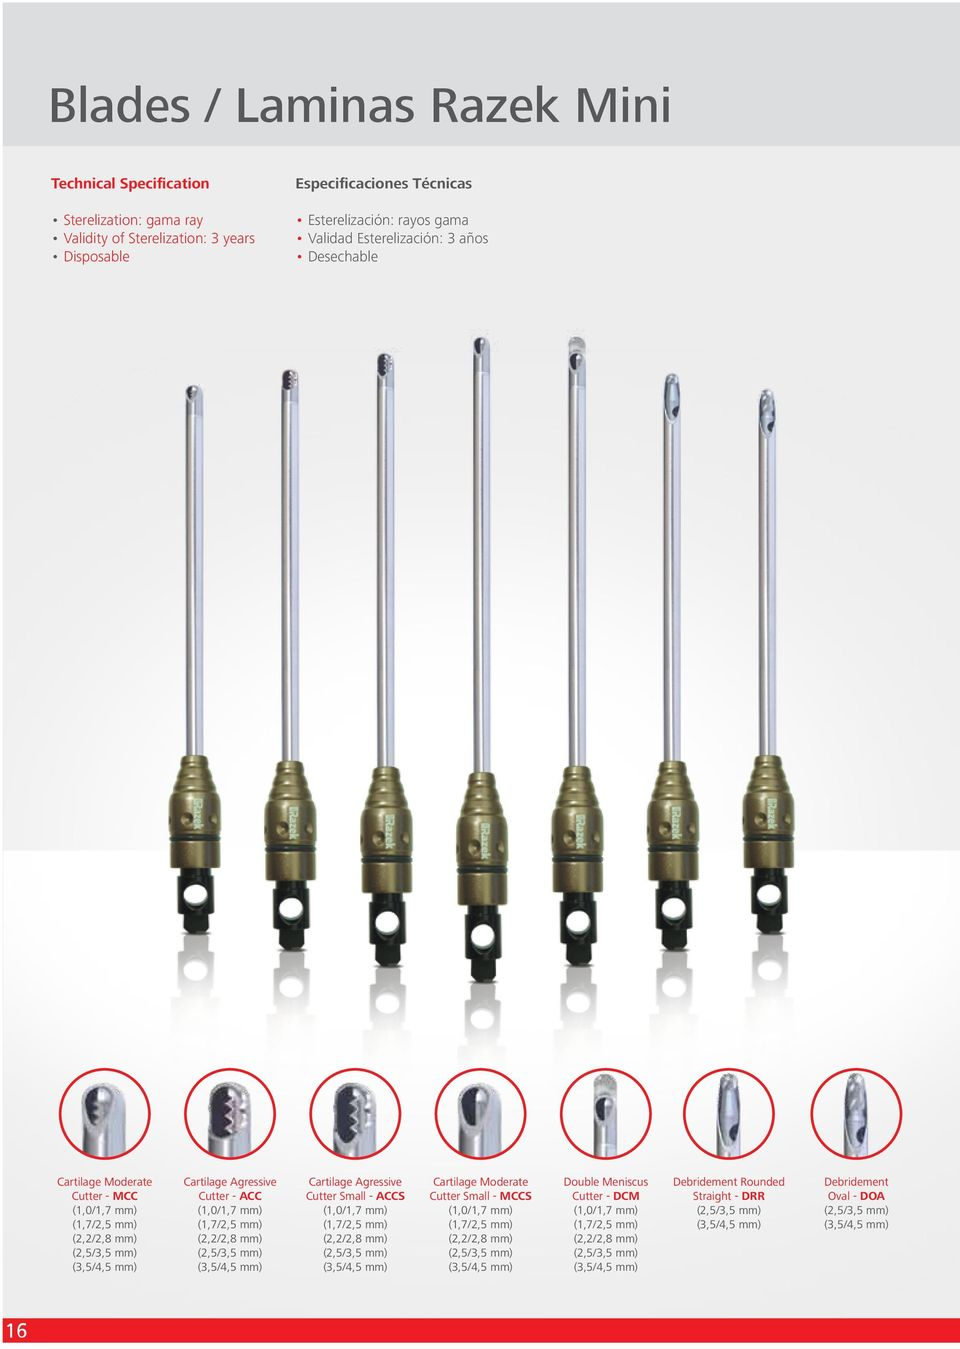 Small - ACCS (1,0/1,7 mm) (1,7/2,5 mm) (2,2/2,8 mm) (2,5/3,5 mm) (3,5/4,5 mm) Cartilage Moderate Cutter Small - MCCS (1,0/1,7 mm) (1,7/2,5 mm) (2,2/2,8 mm) (2,5/3,5 mm) (3,5/4,5 mm) Double